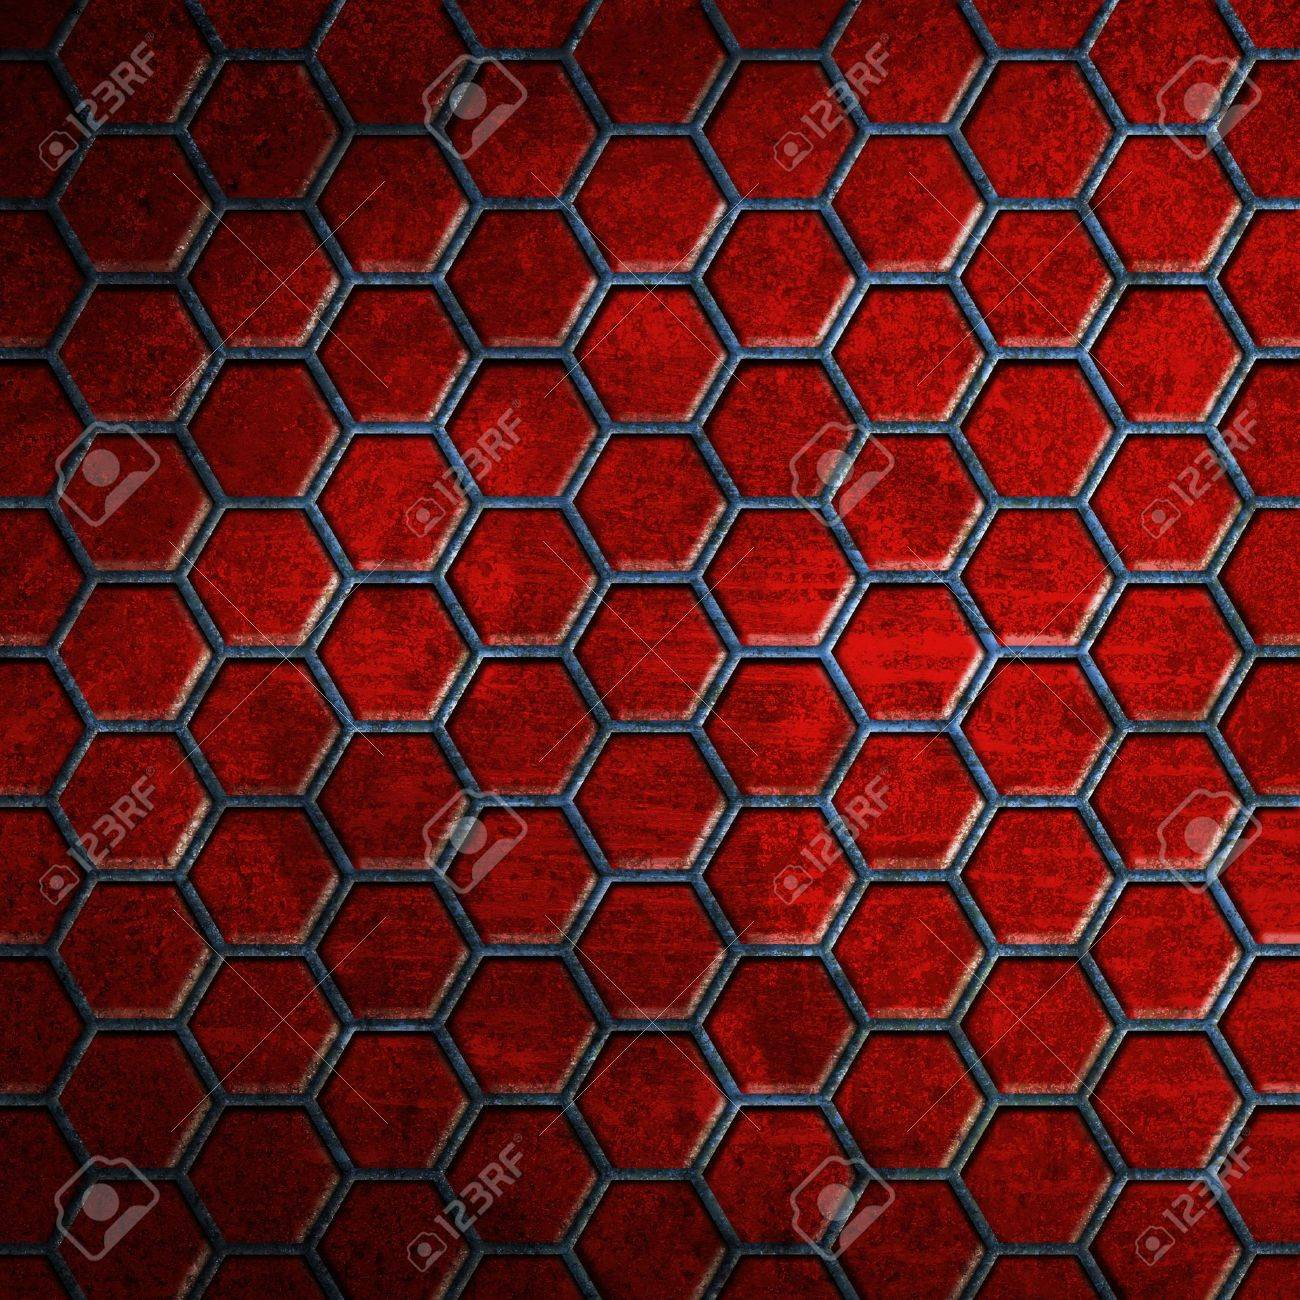 Old metal rusty grunge retro vintage paper background with pattern Stock Photo - 9947708